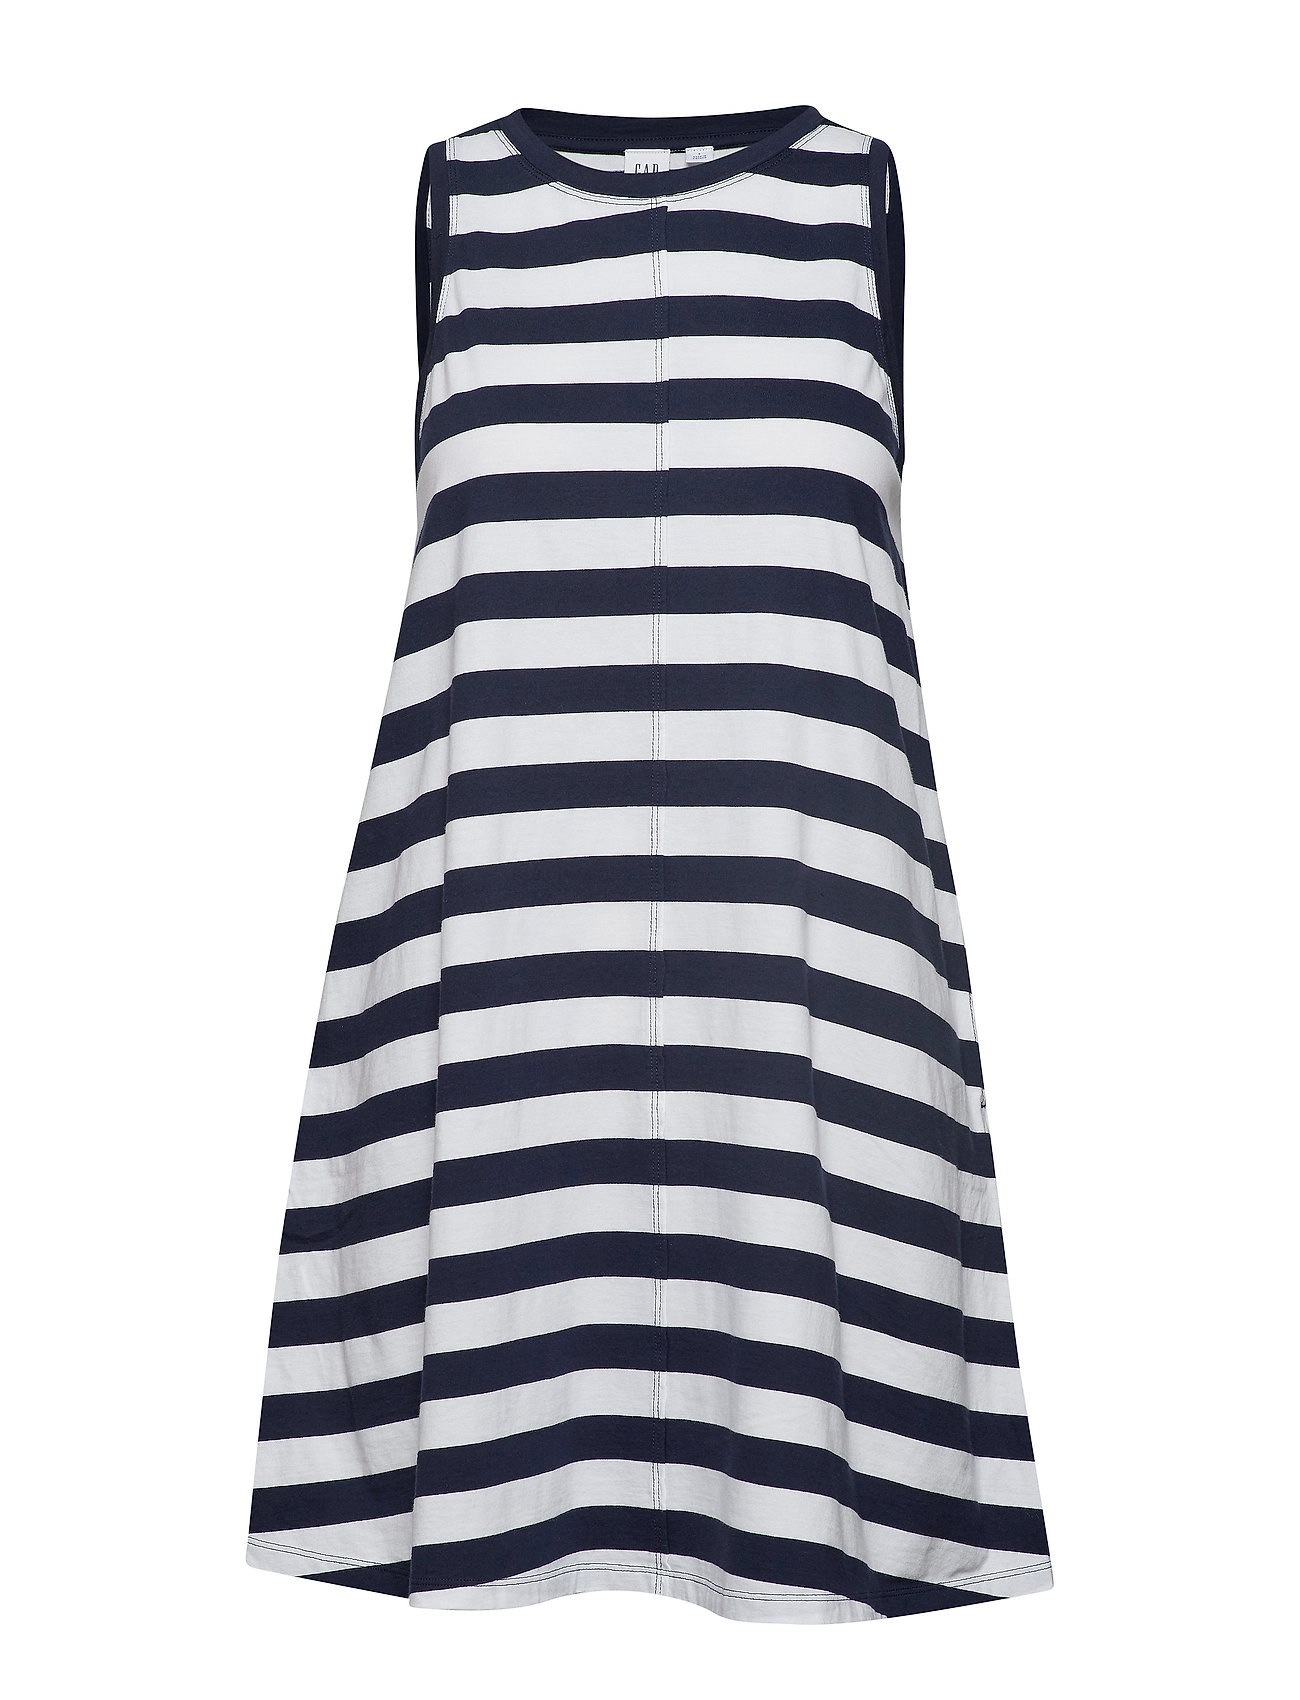 Image of Sleeveless Swing Dress Knælang Kjole Blå GAP (3186400829)